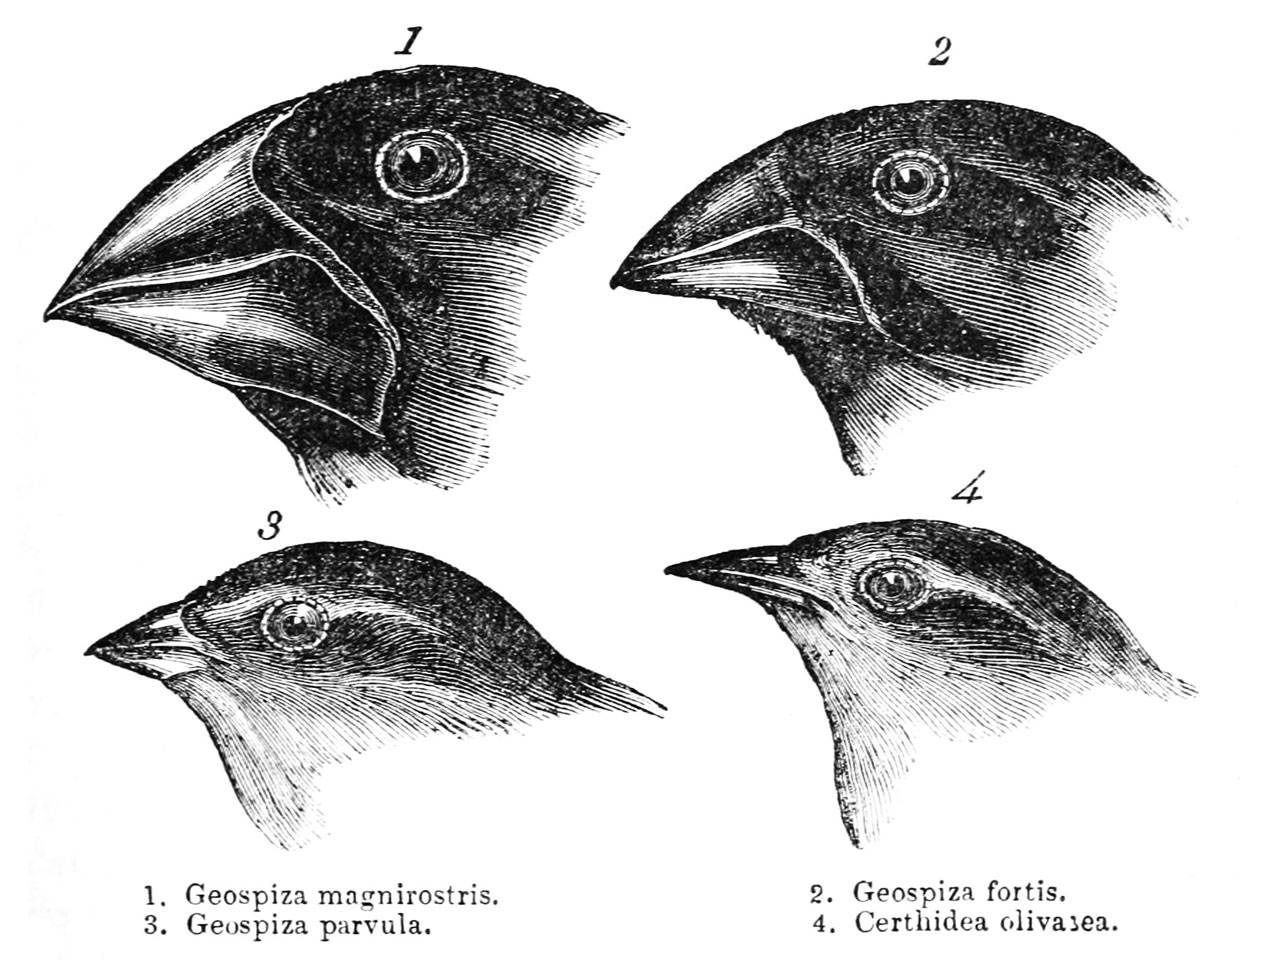 Charles Darwin Theory Of Evolution Finches his theory of evolution